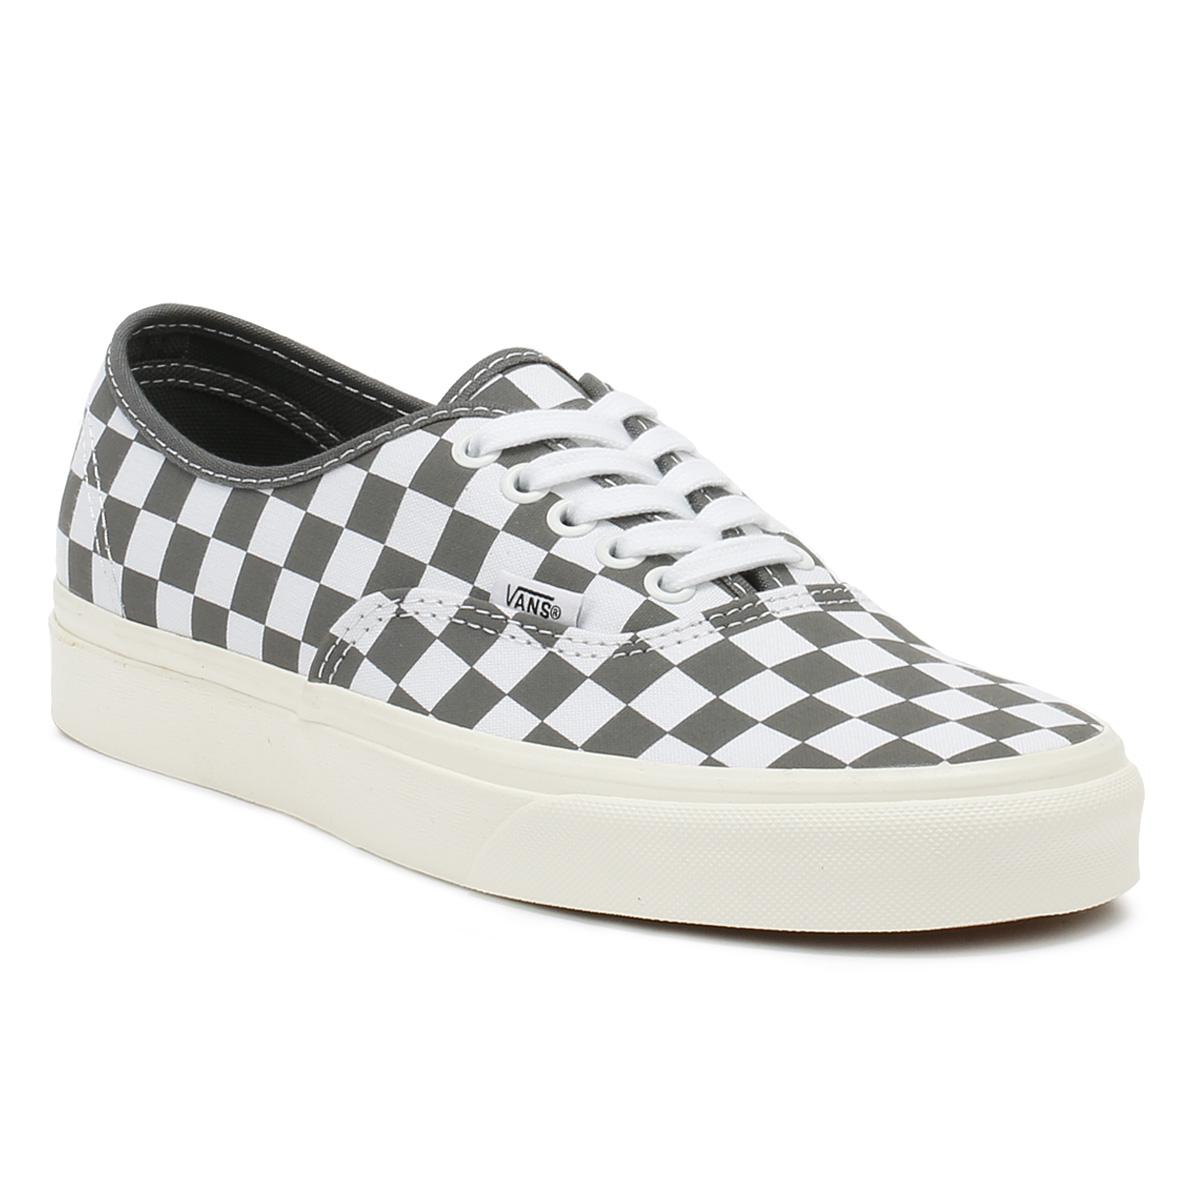 b30dfbf906 Lyst - Vans Checkerboard Authentic Shoes in Gray for Men - Save 22%